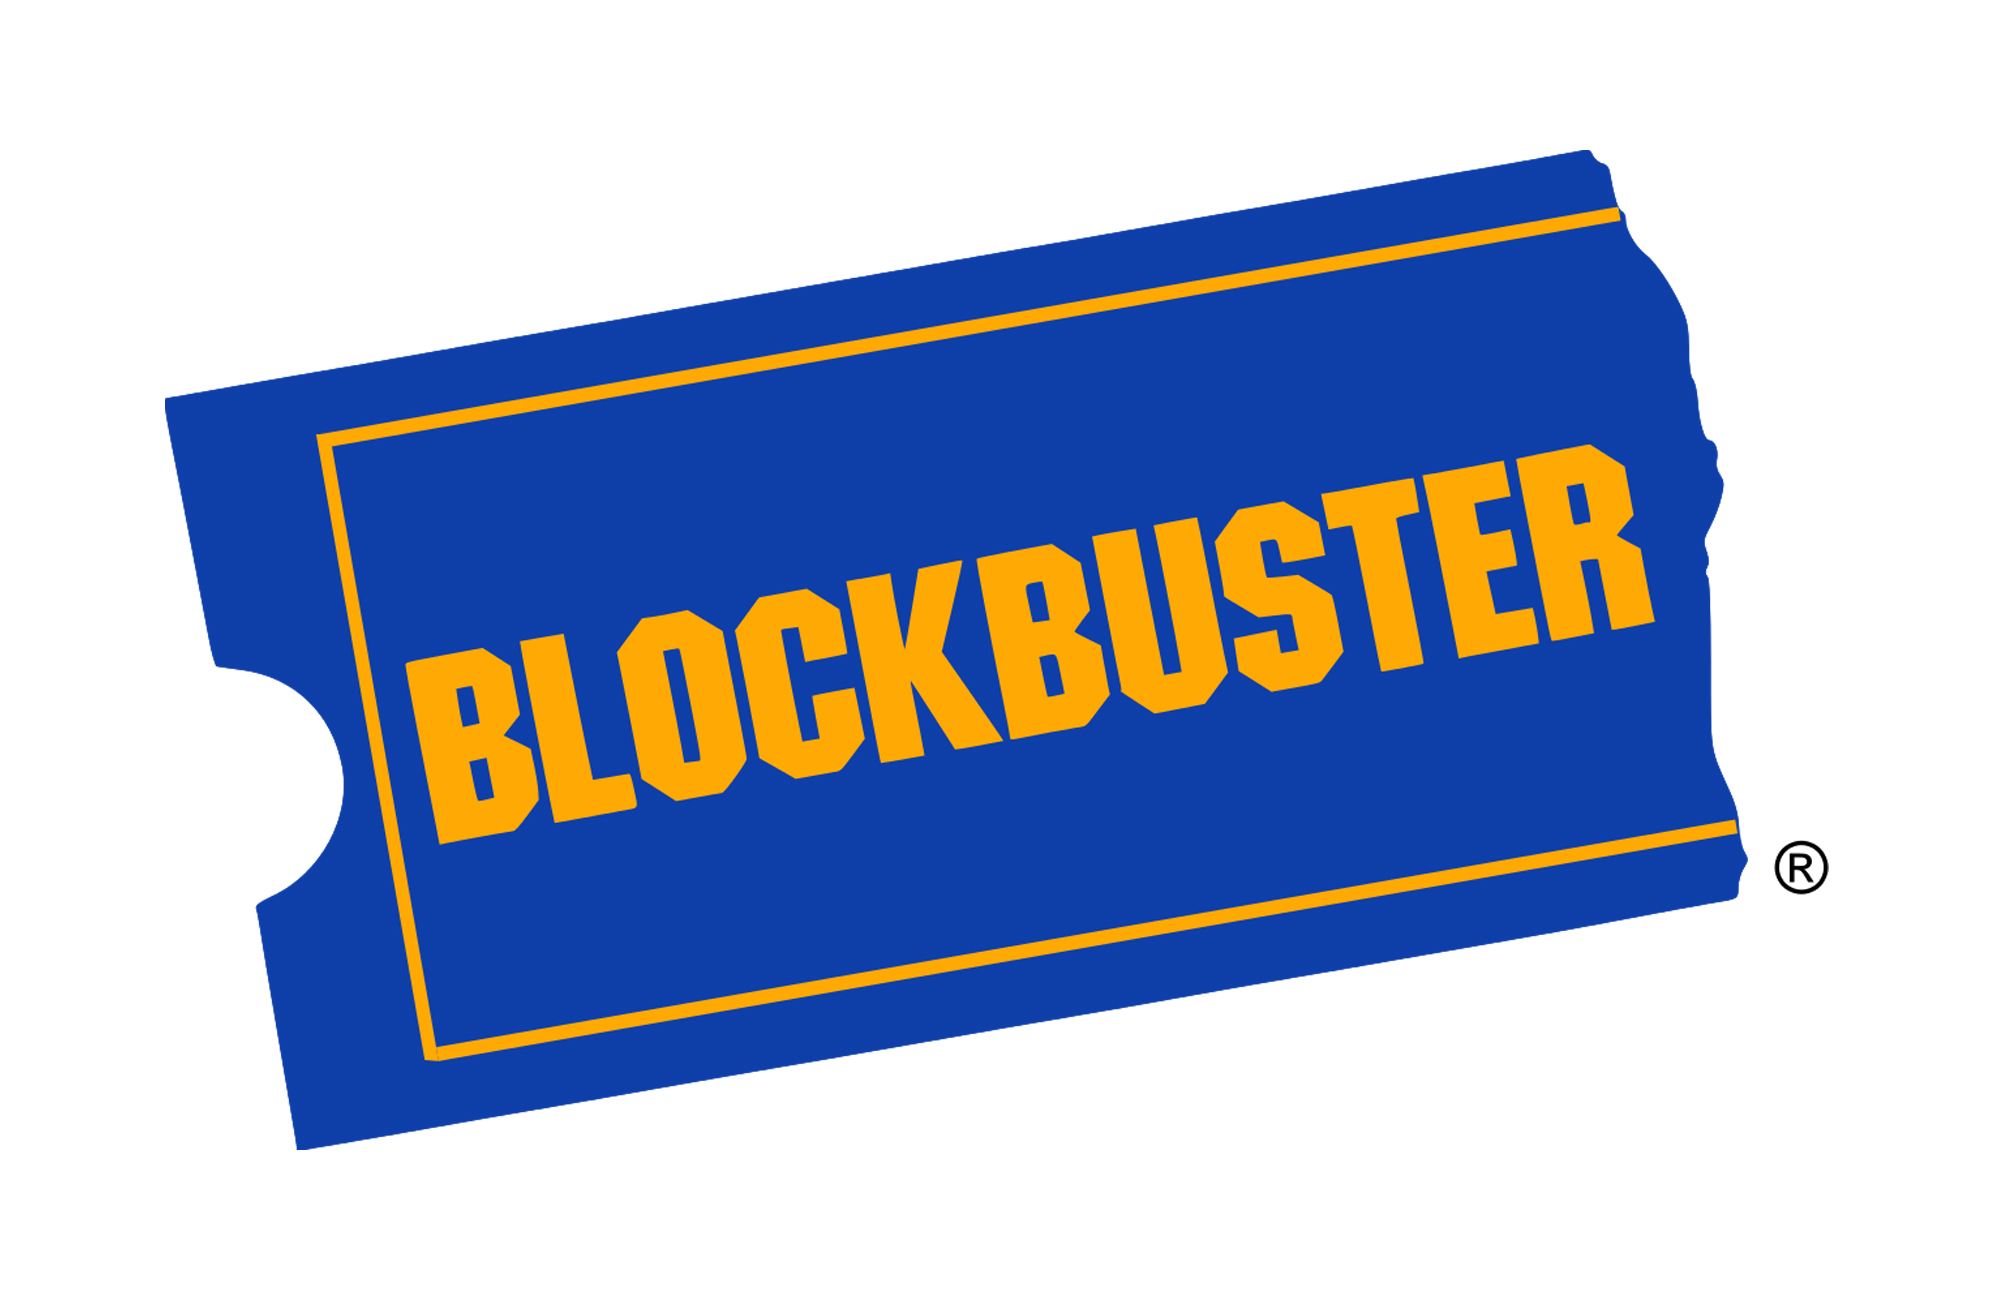 beste blockbuster